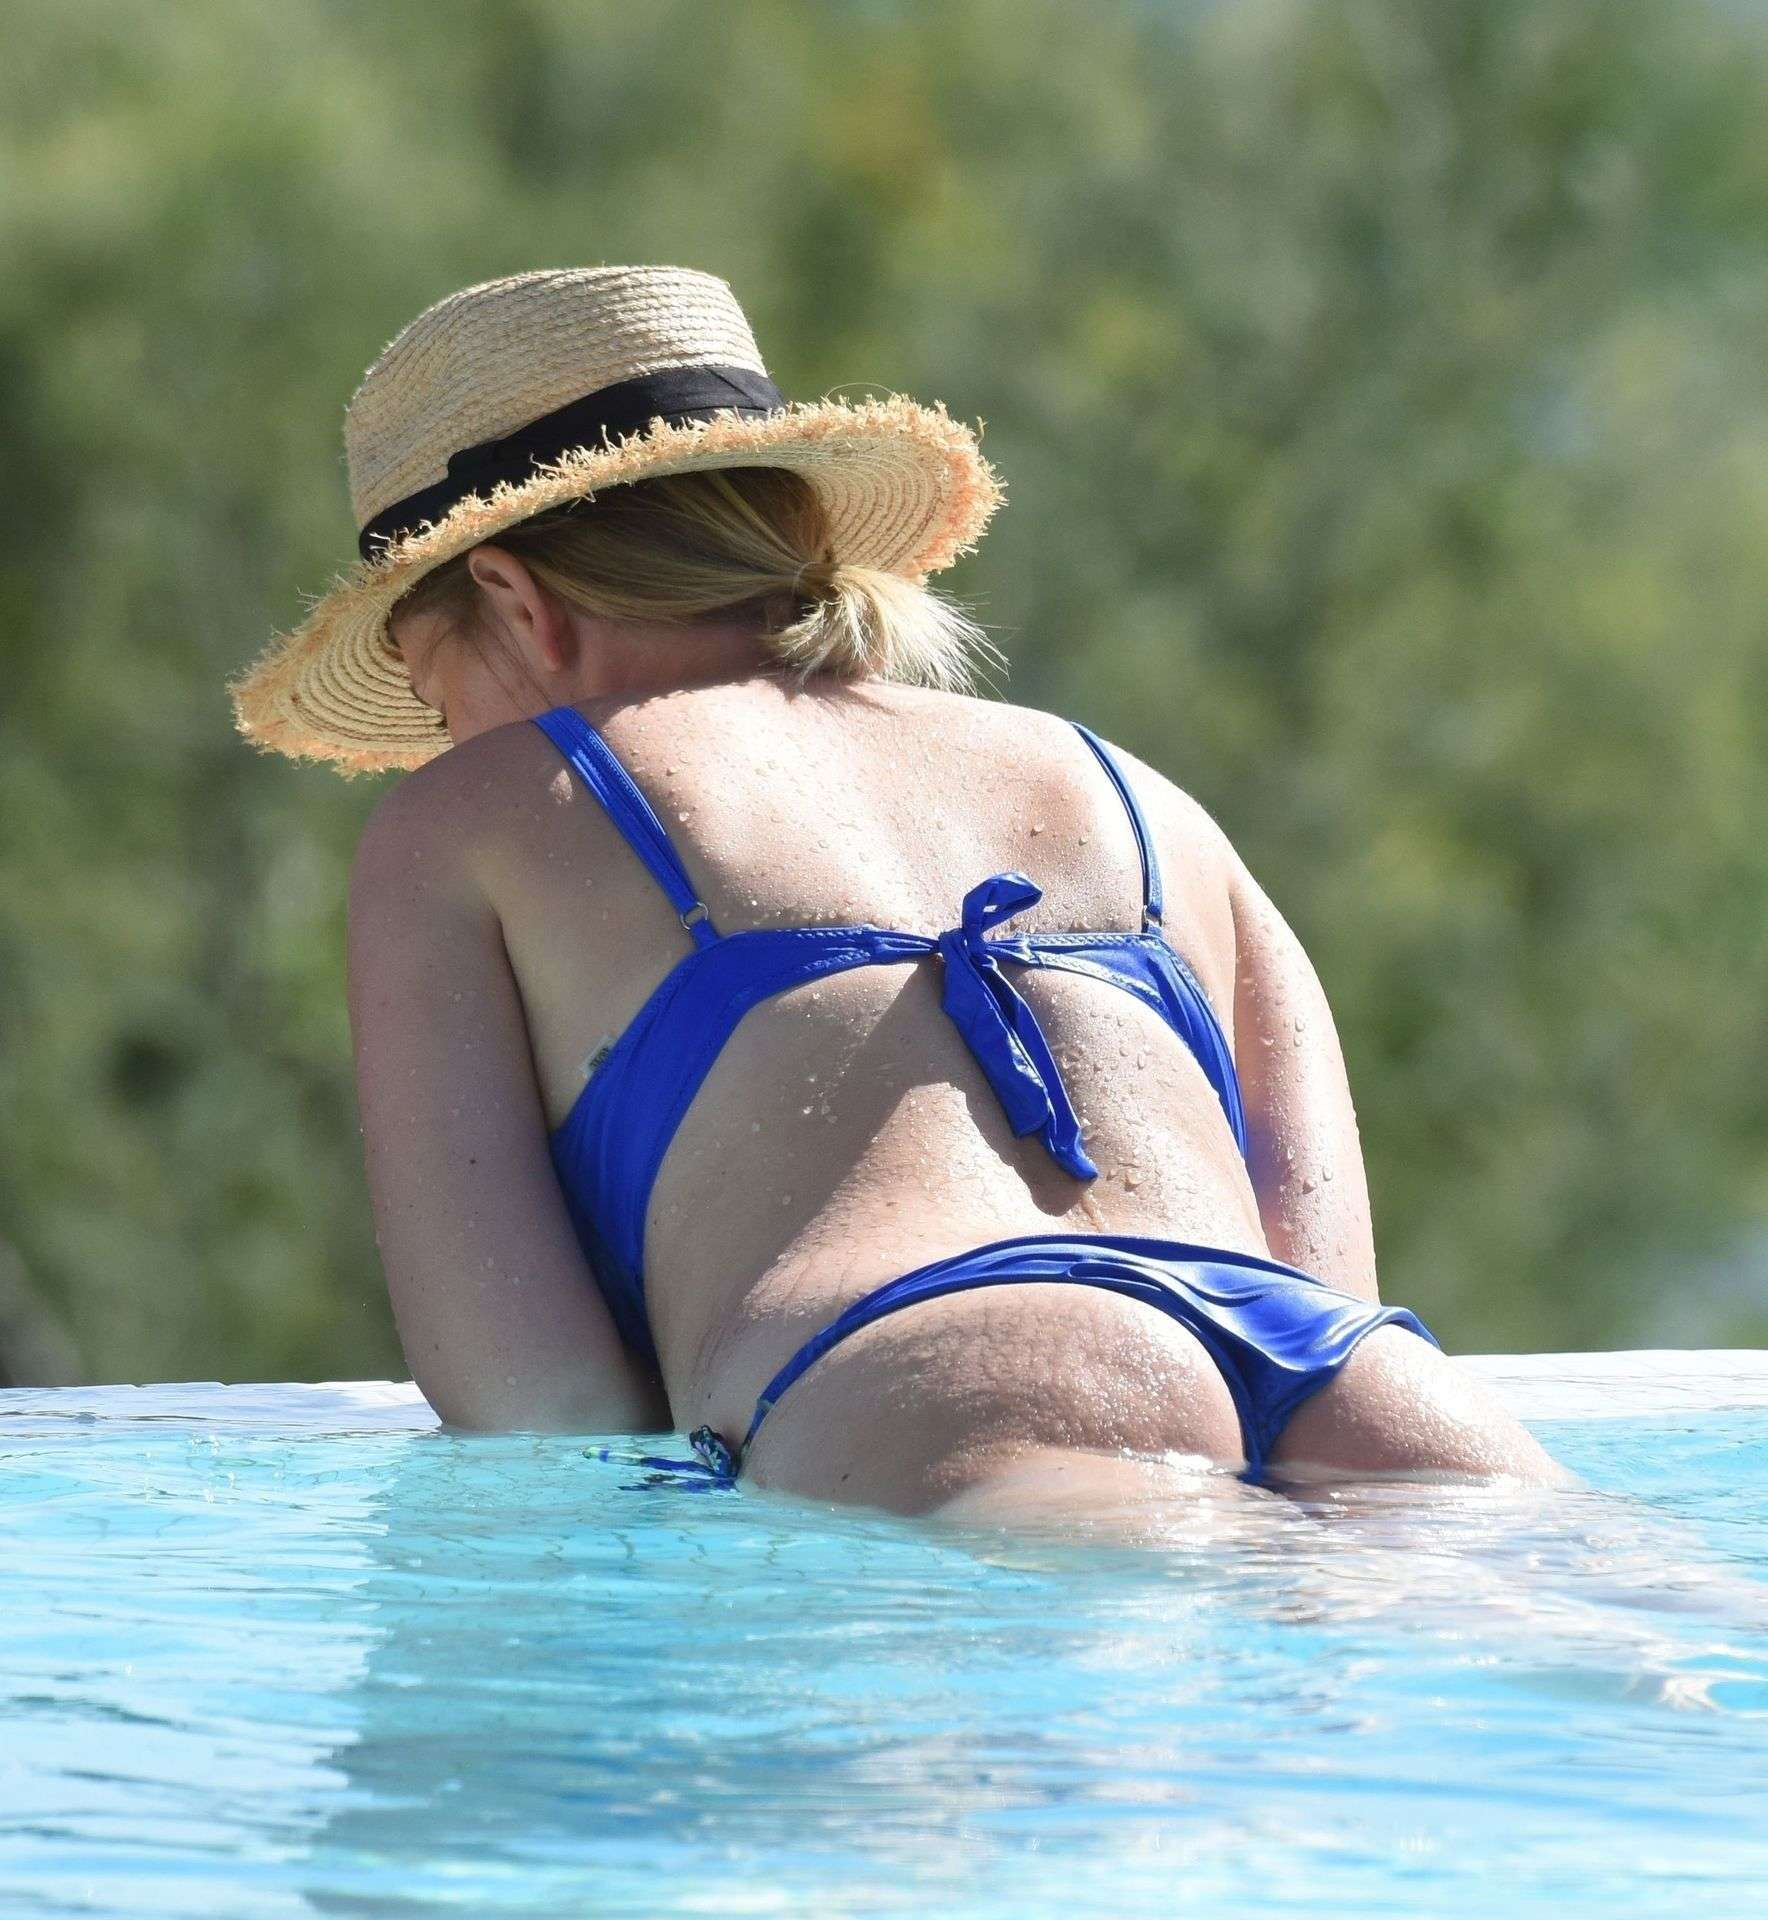 Amy Hart Booty in a Skimpy Blue Bikini Out in Portugal